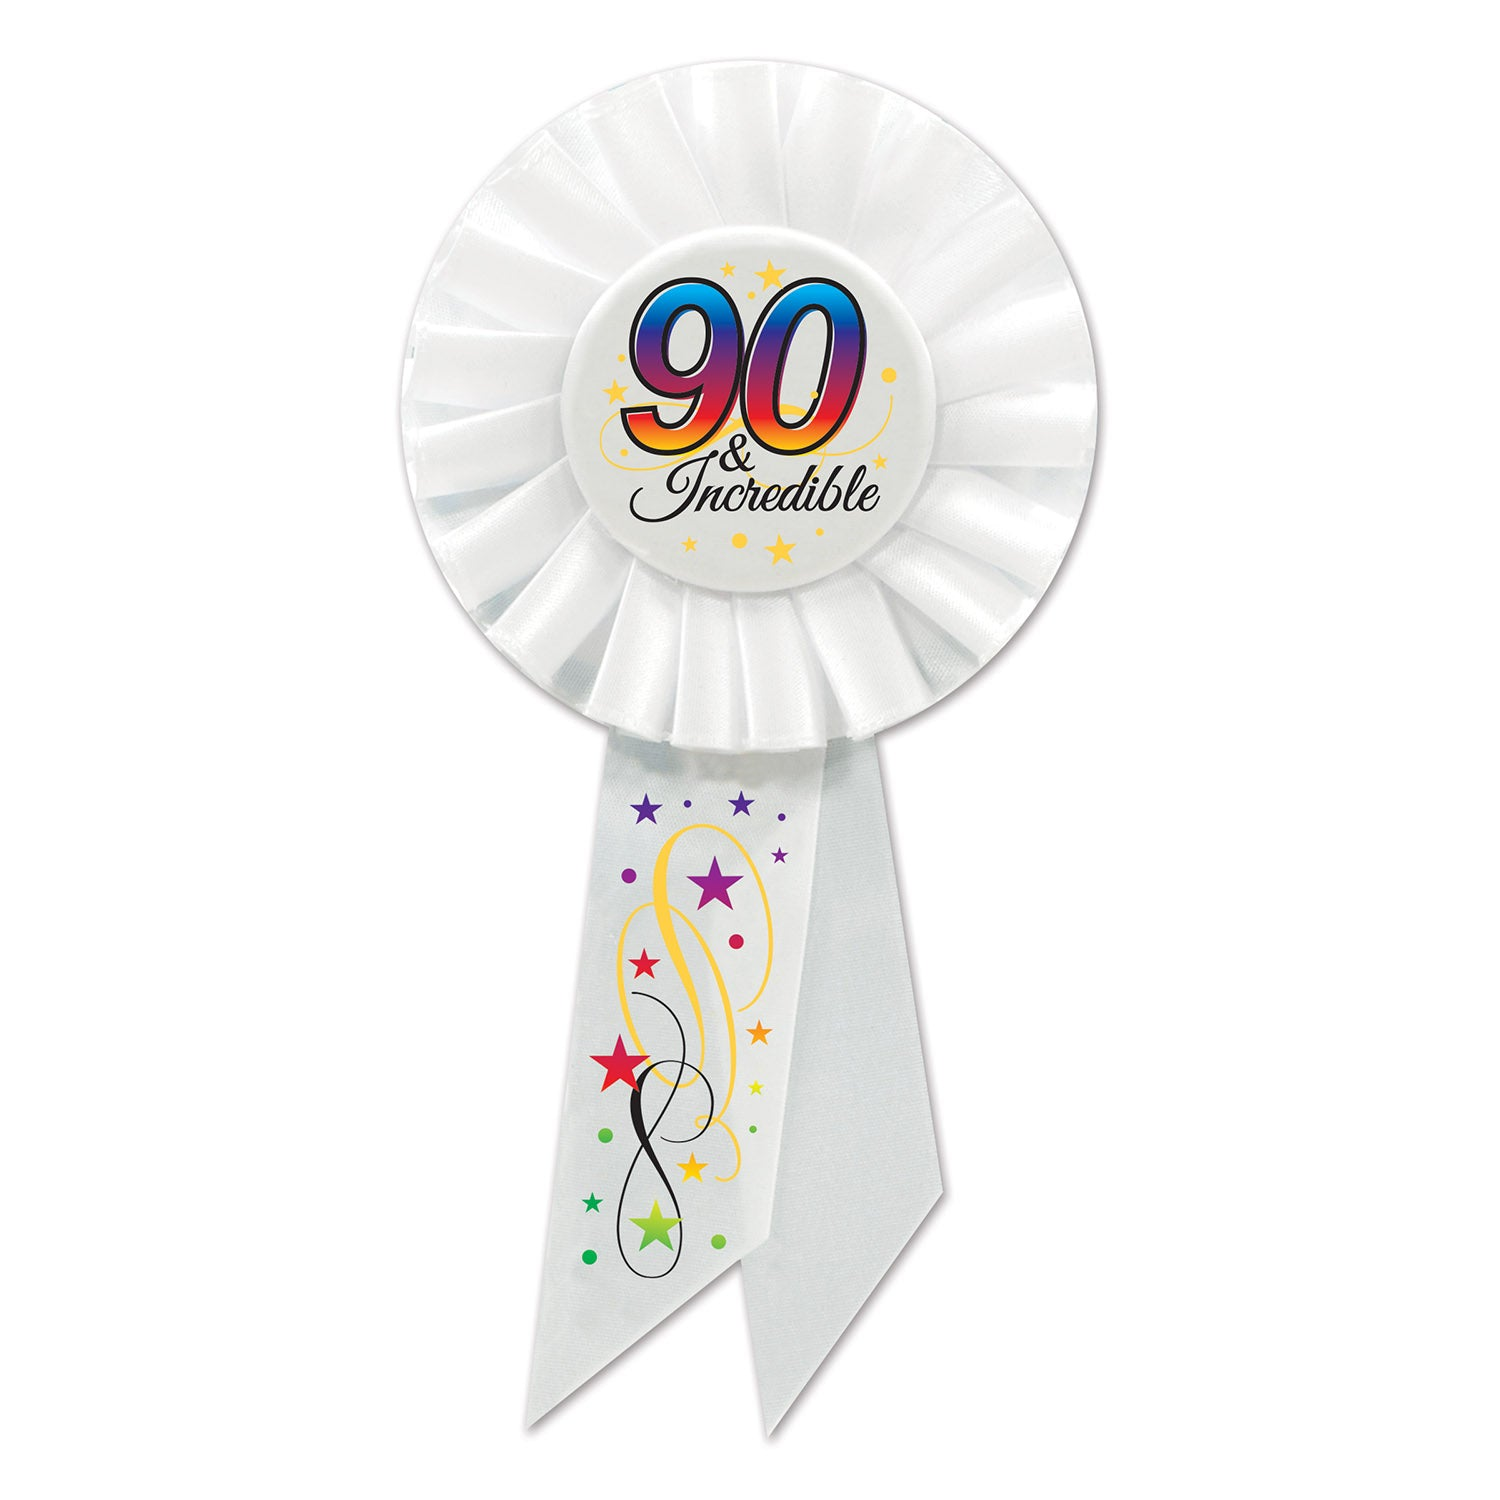 90 & Incredible Rosette by Beistle - 90th Birthday Party Decorations